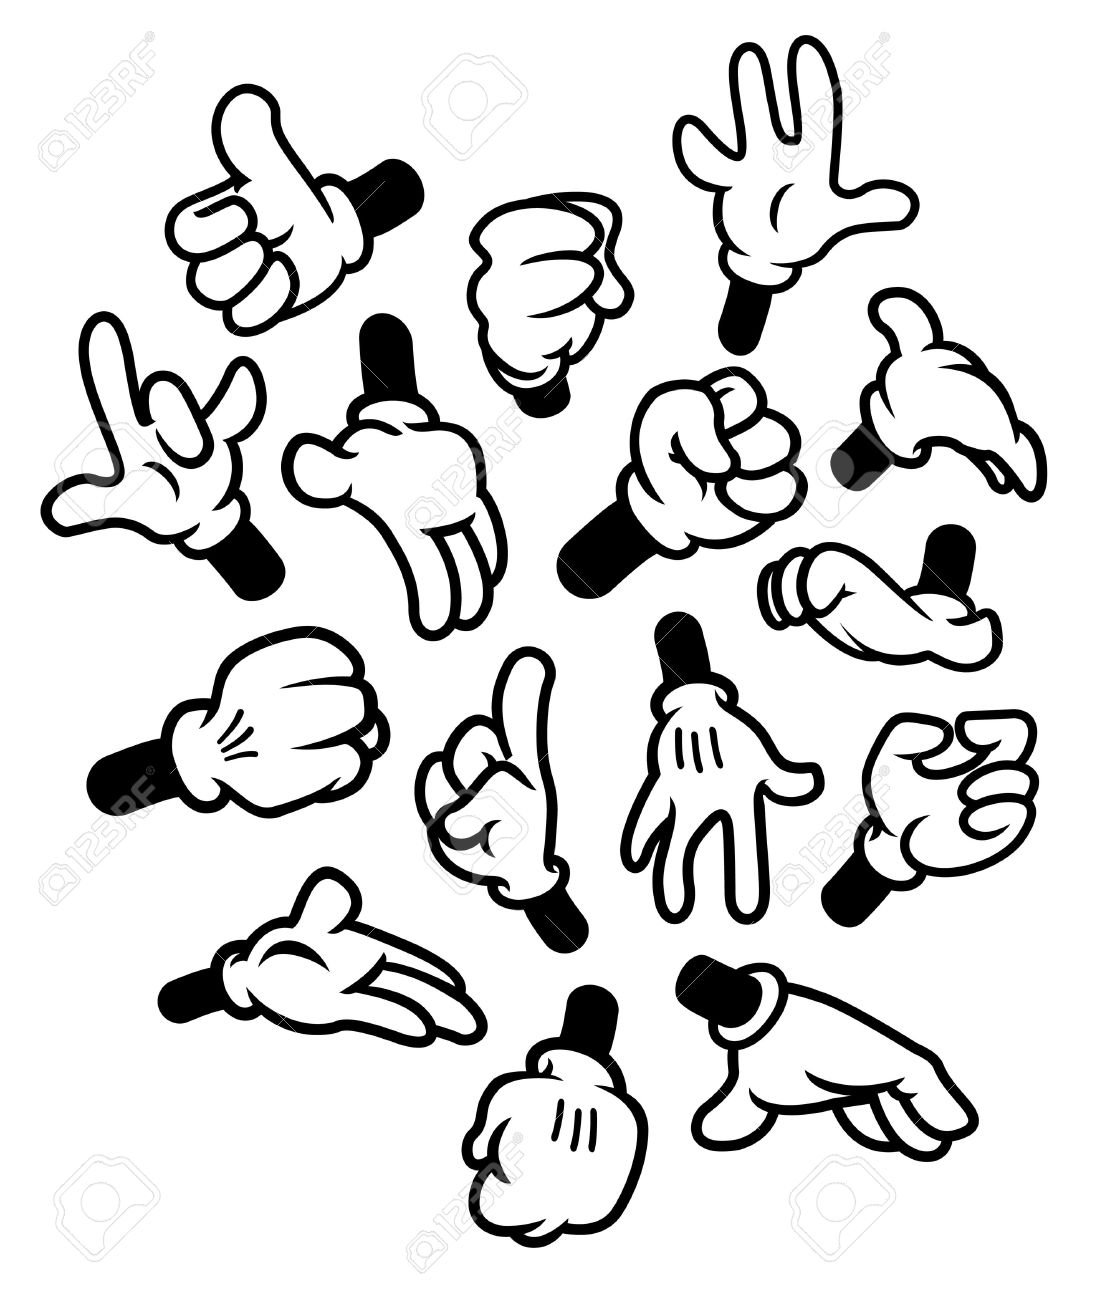 Cartoon Hands Gestures Royalty Free Cliparts Vectors And Stock